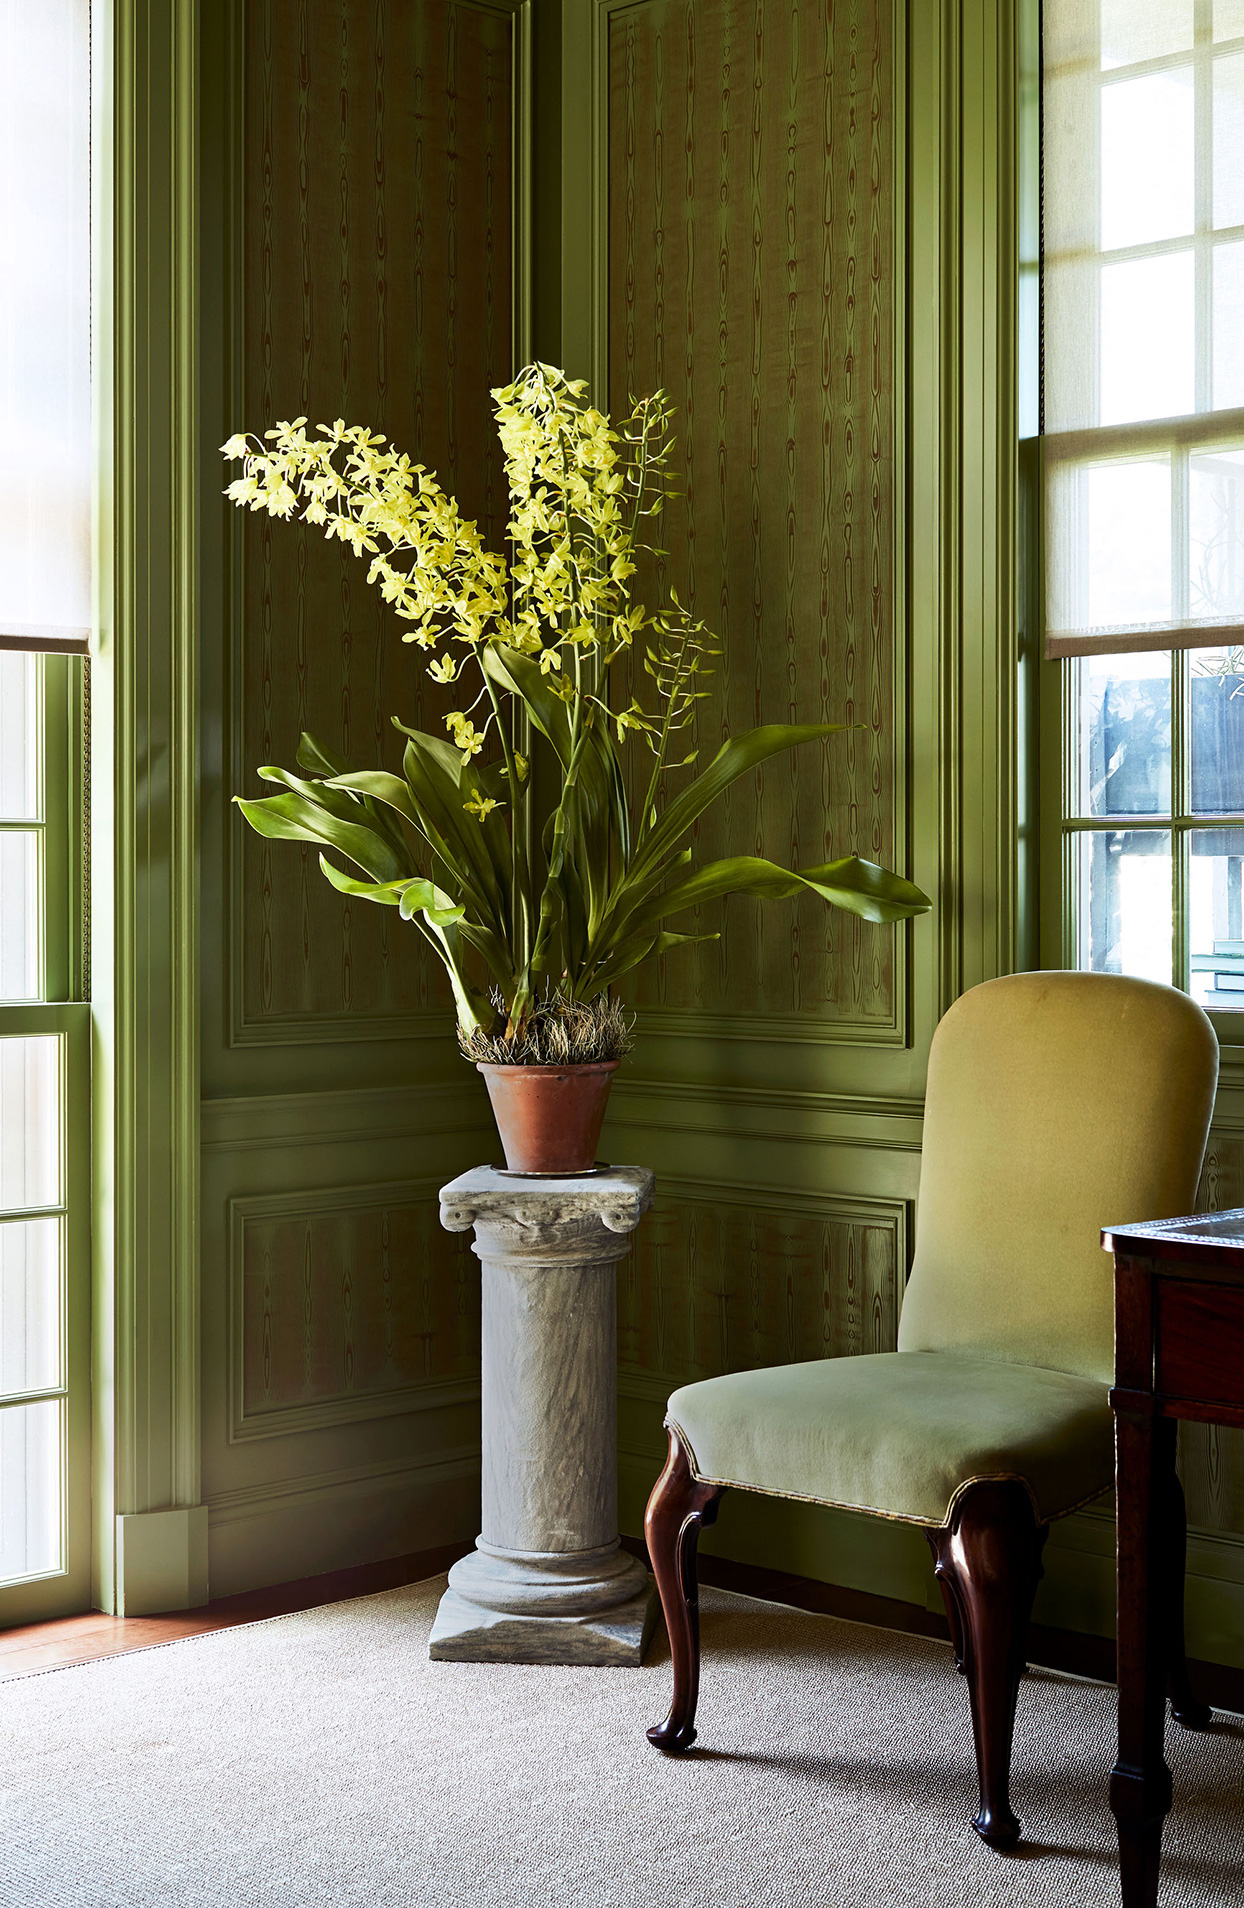 Nine of Martha Stewart's Unique, Beautiful Houseplants—Plus, a Look at How She Displays Each